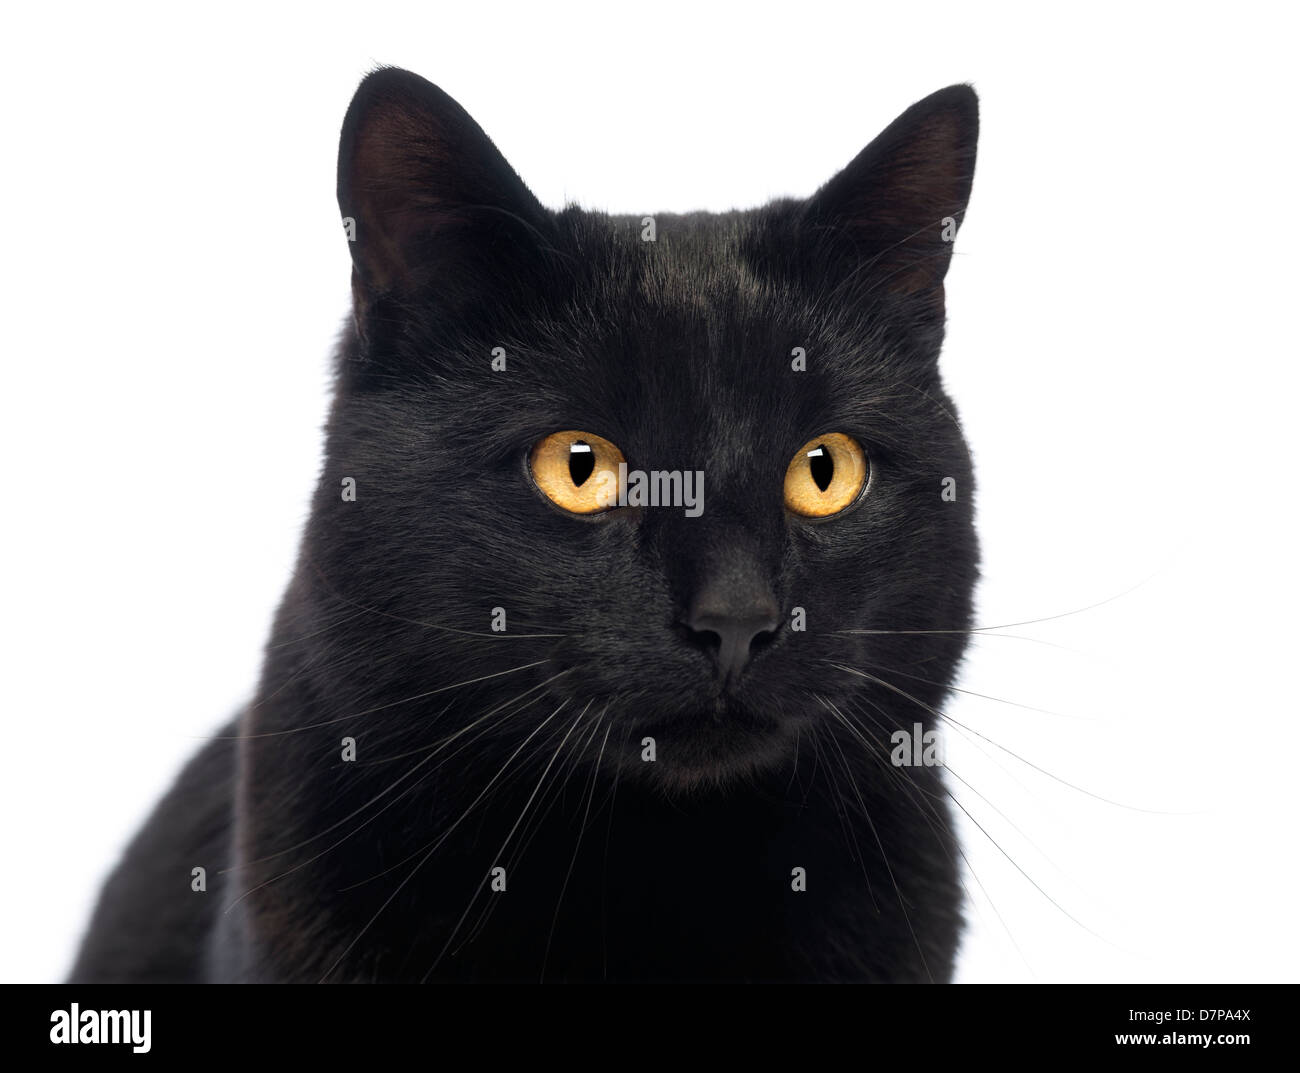 Close-up of a Black Cat against white background - Stock Image